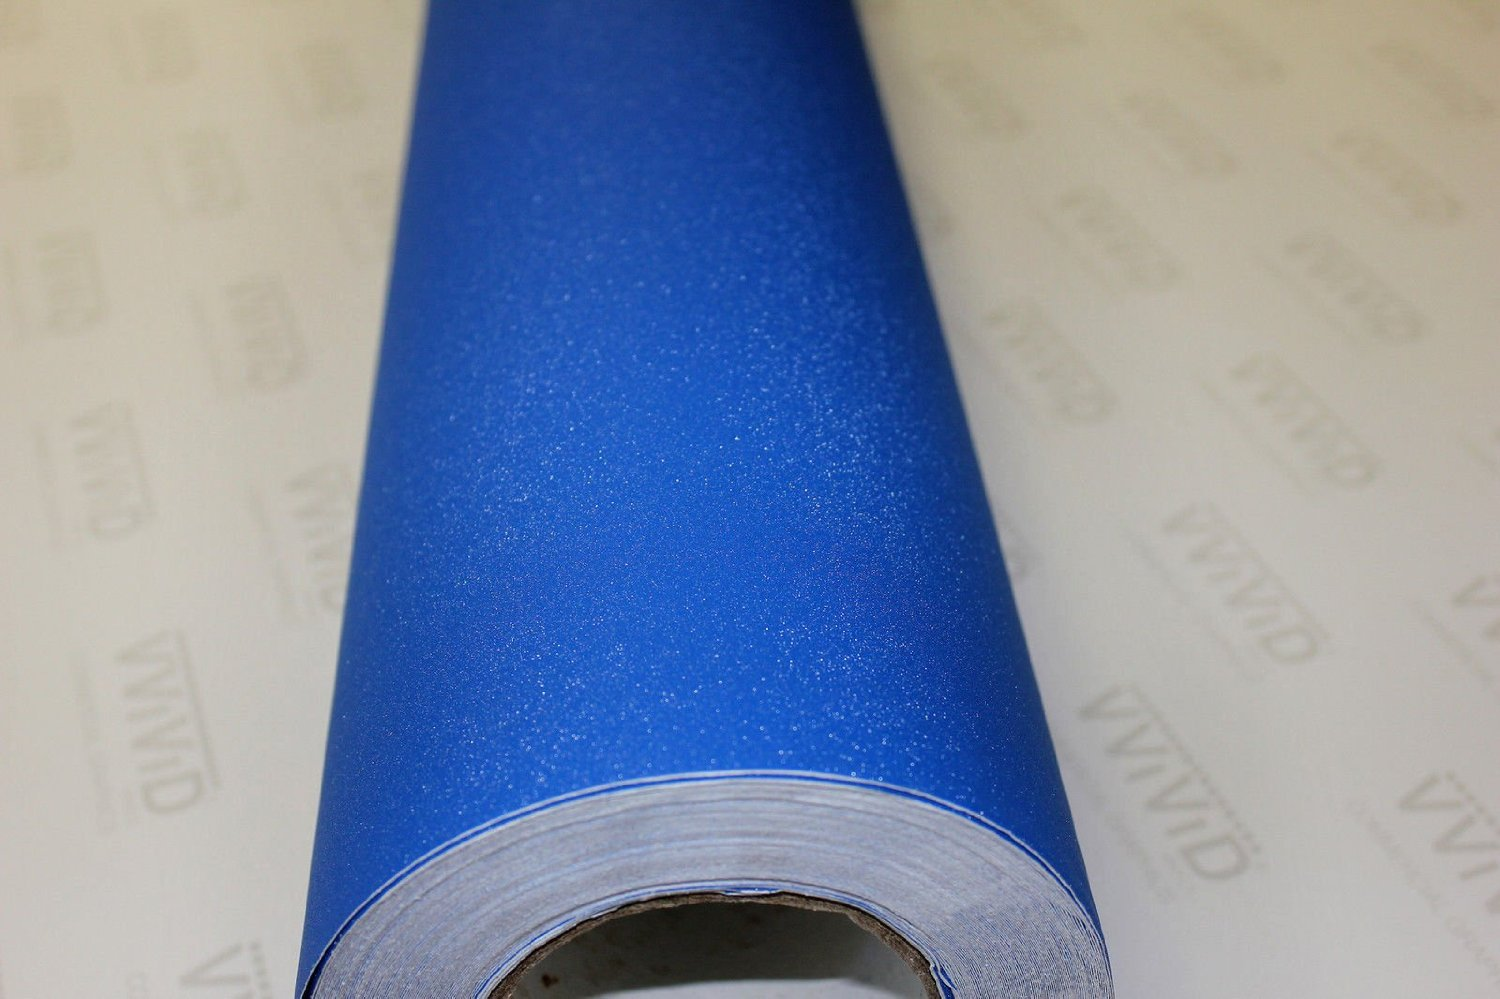 3ft x 5ft 4333200877 VViViD Blue Diamond Matte Vinyl Wrap Film Roll Decal Sheet DIY Easy to Use Air-Release Adhesive